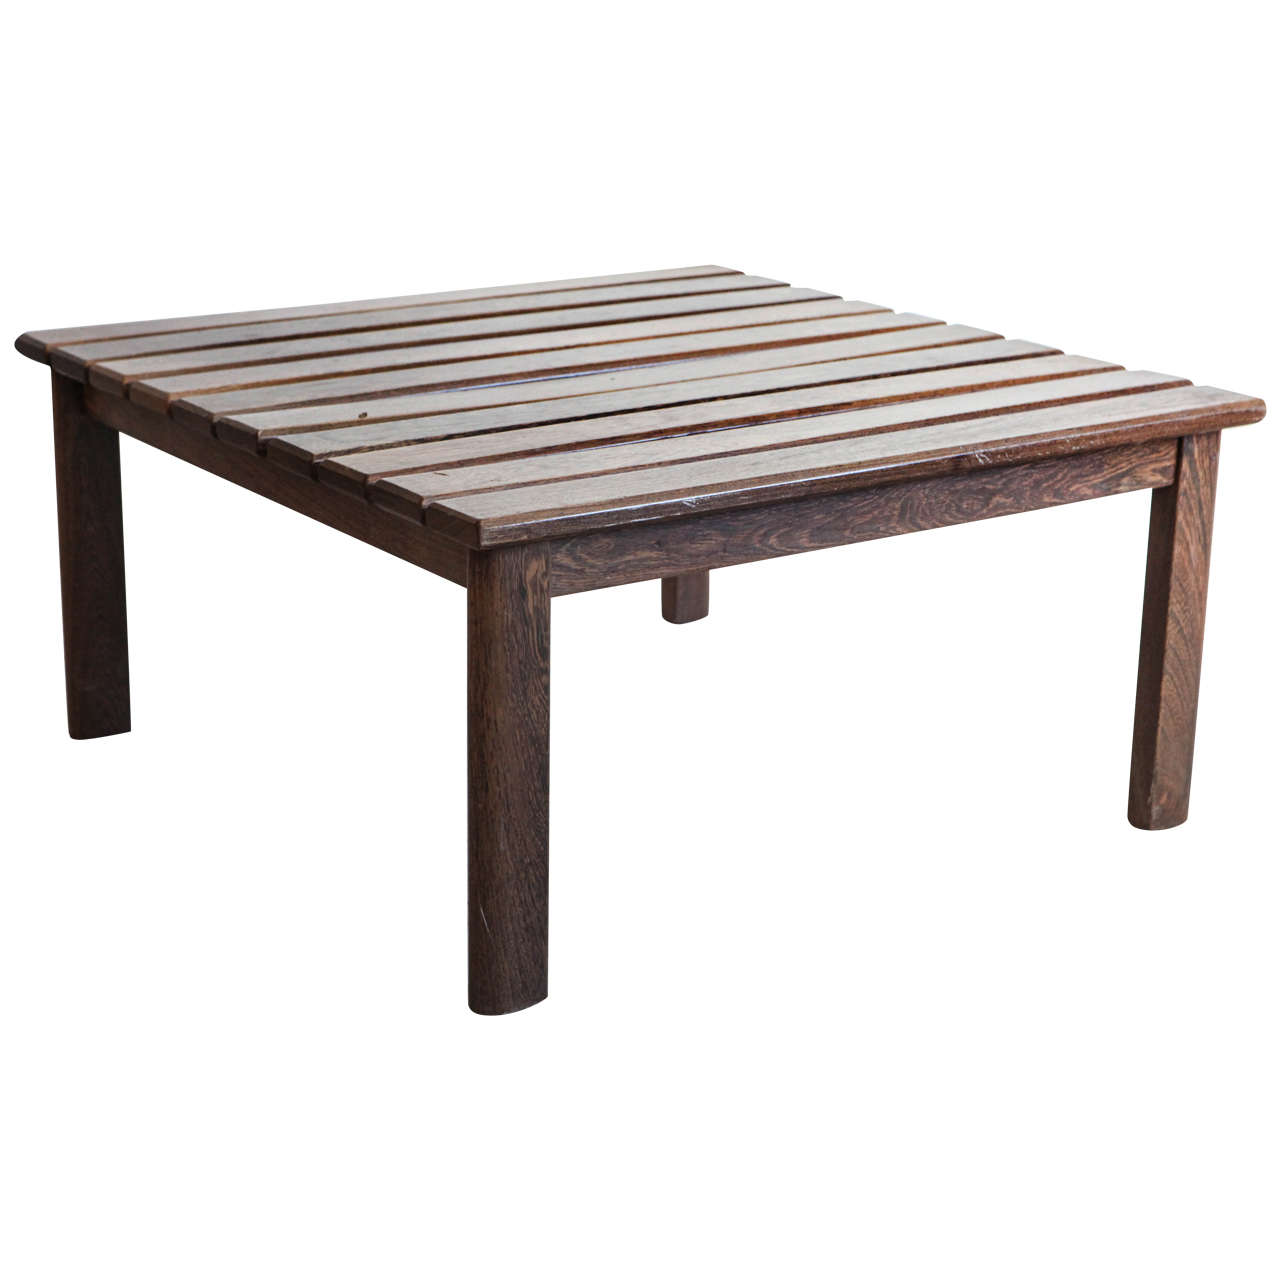 Slatted Teak Square Coffee Table At 1stdibs